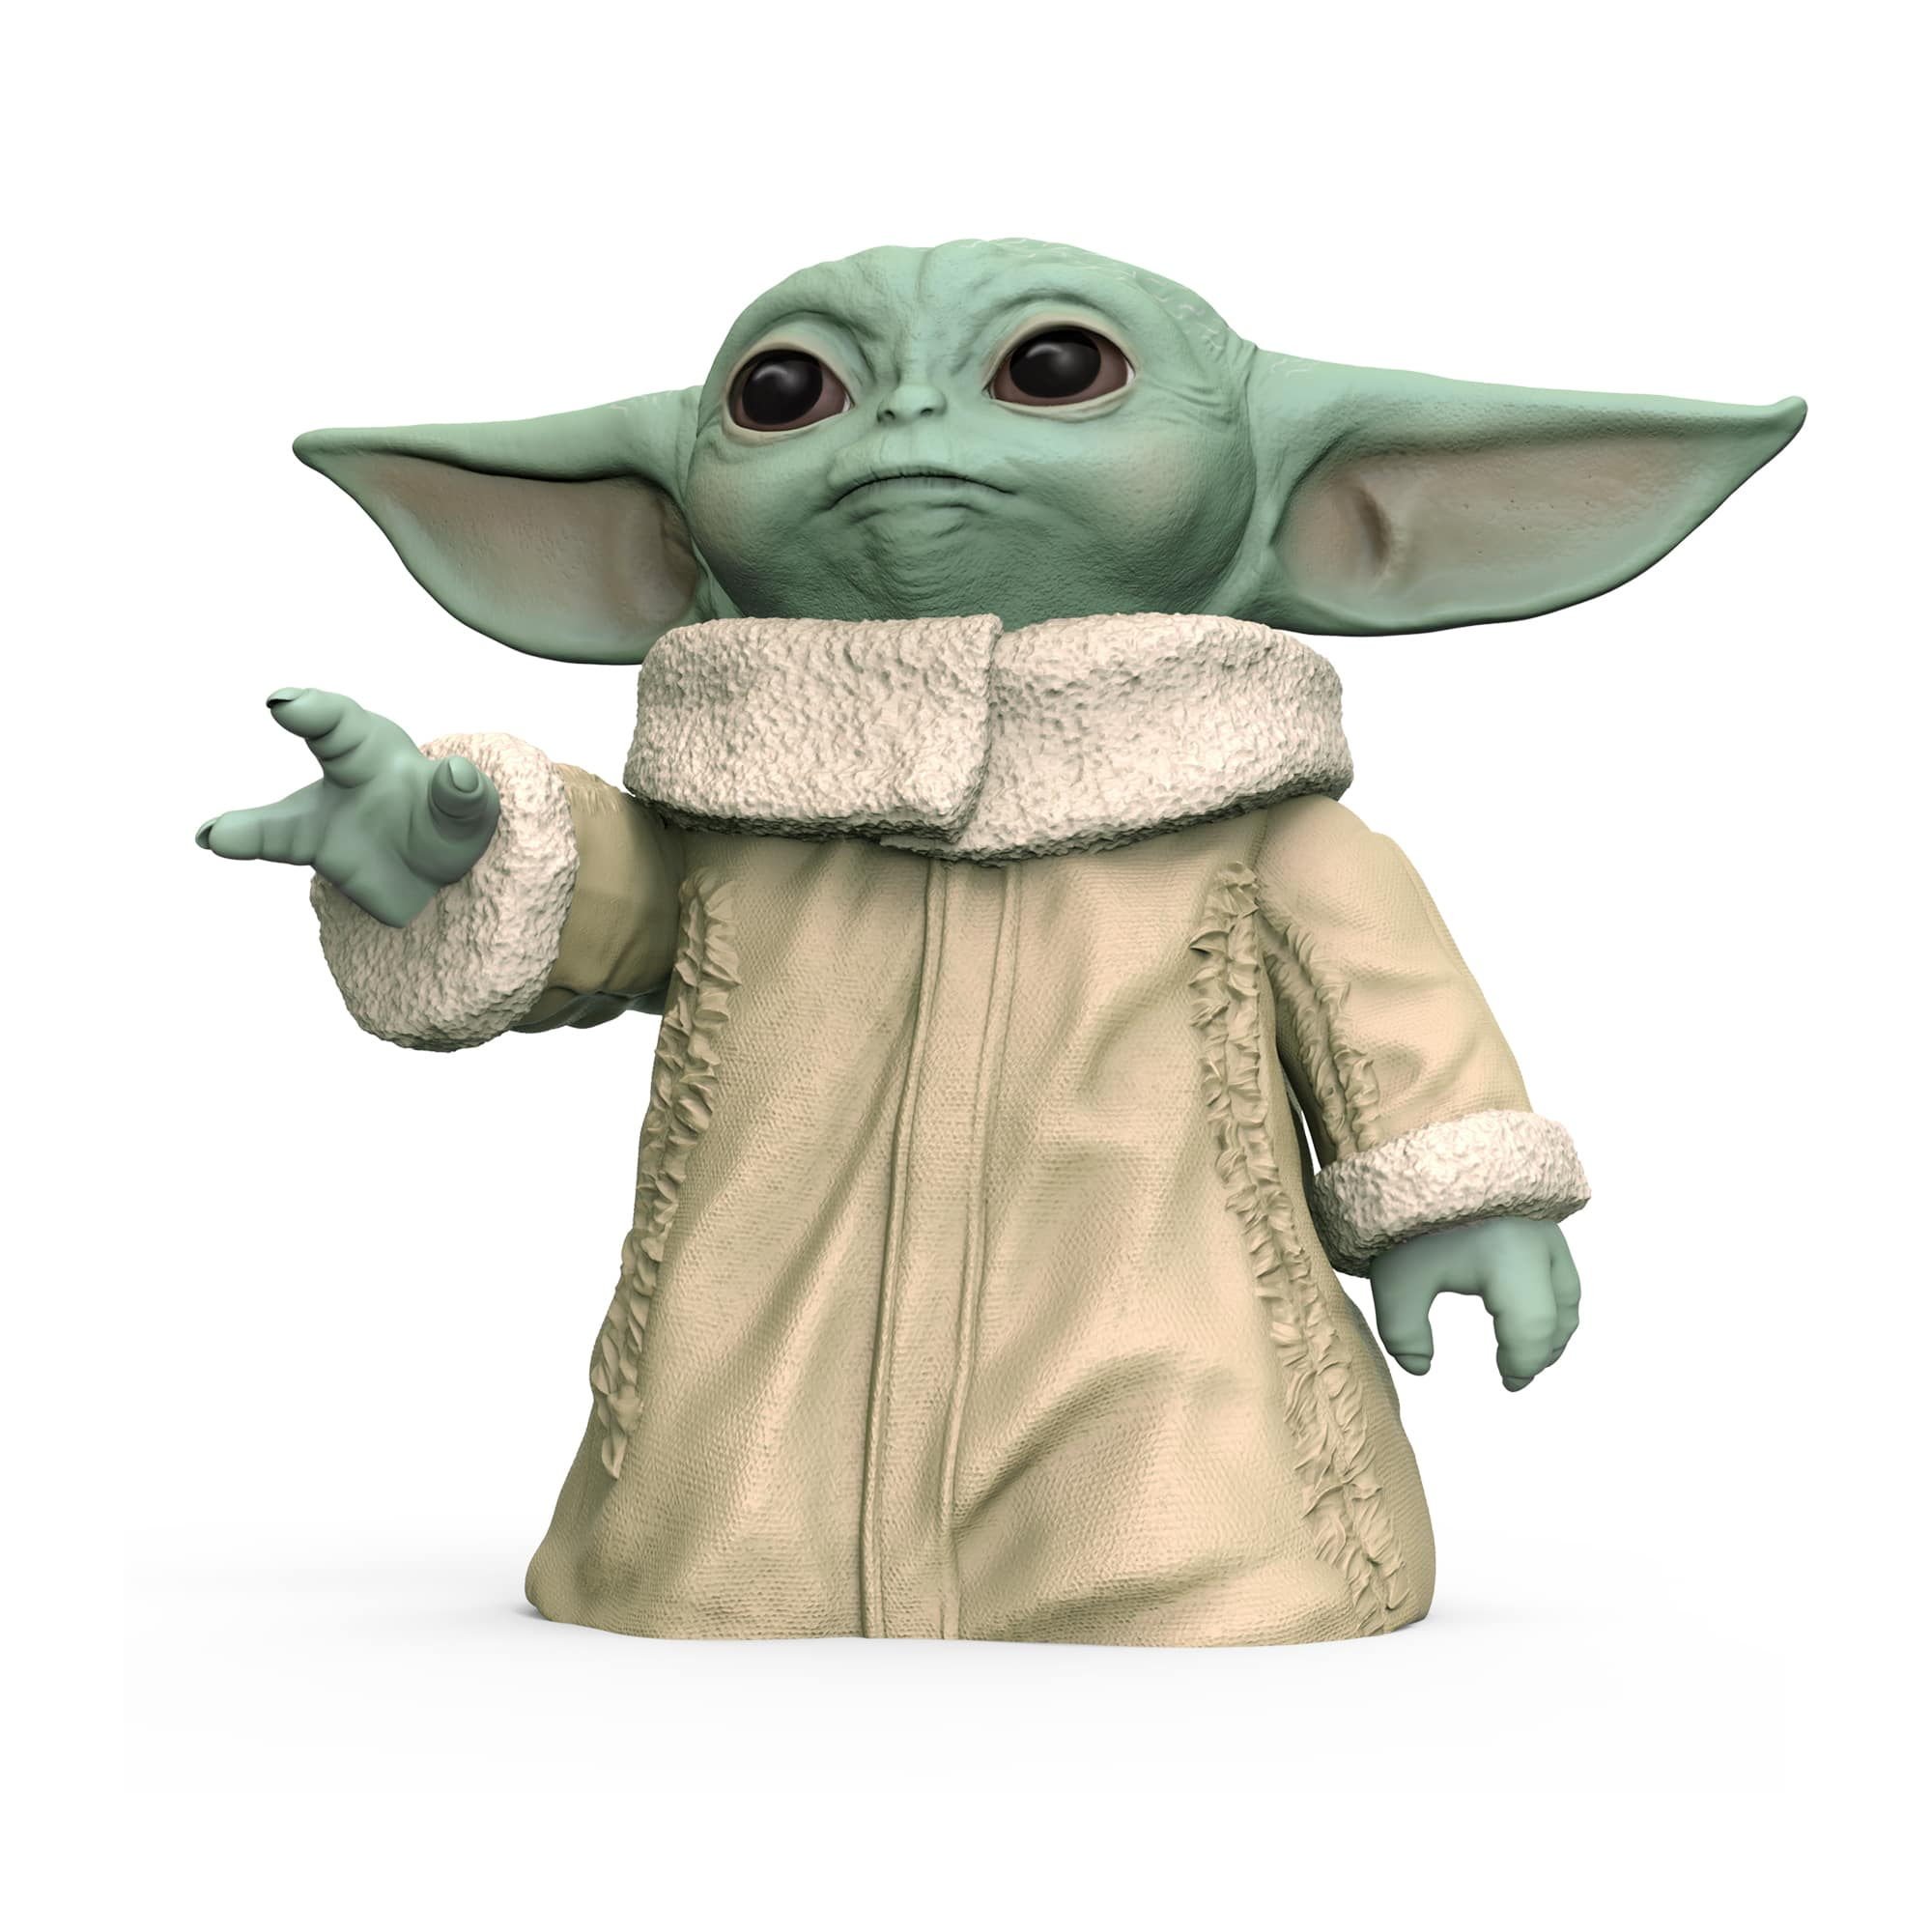 Hasbro's first Baby Yoda toys are here and they're freaking adorable 20